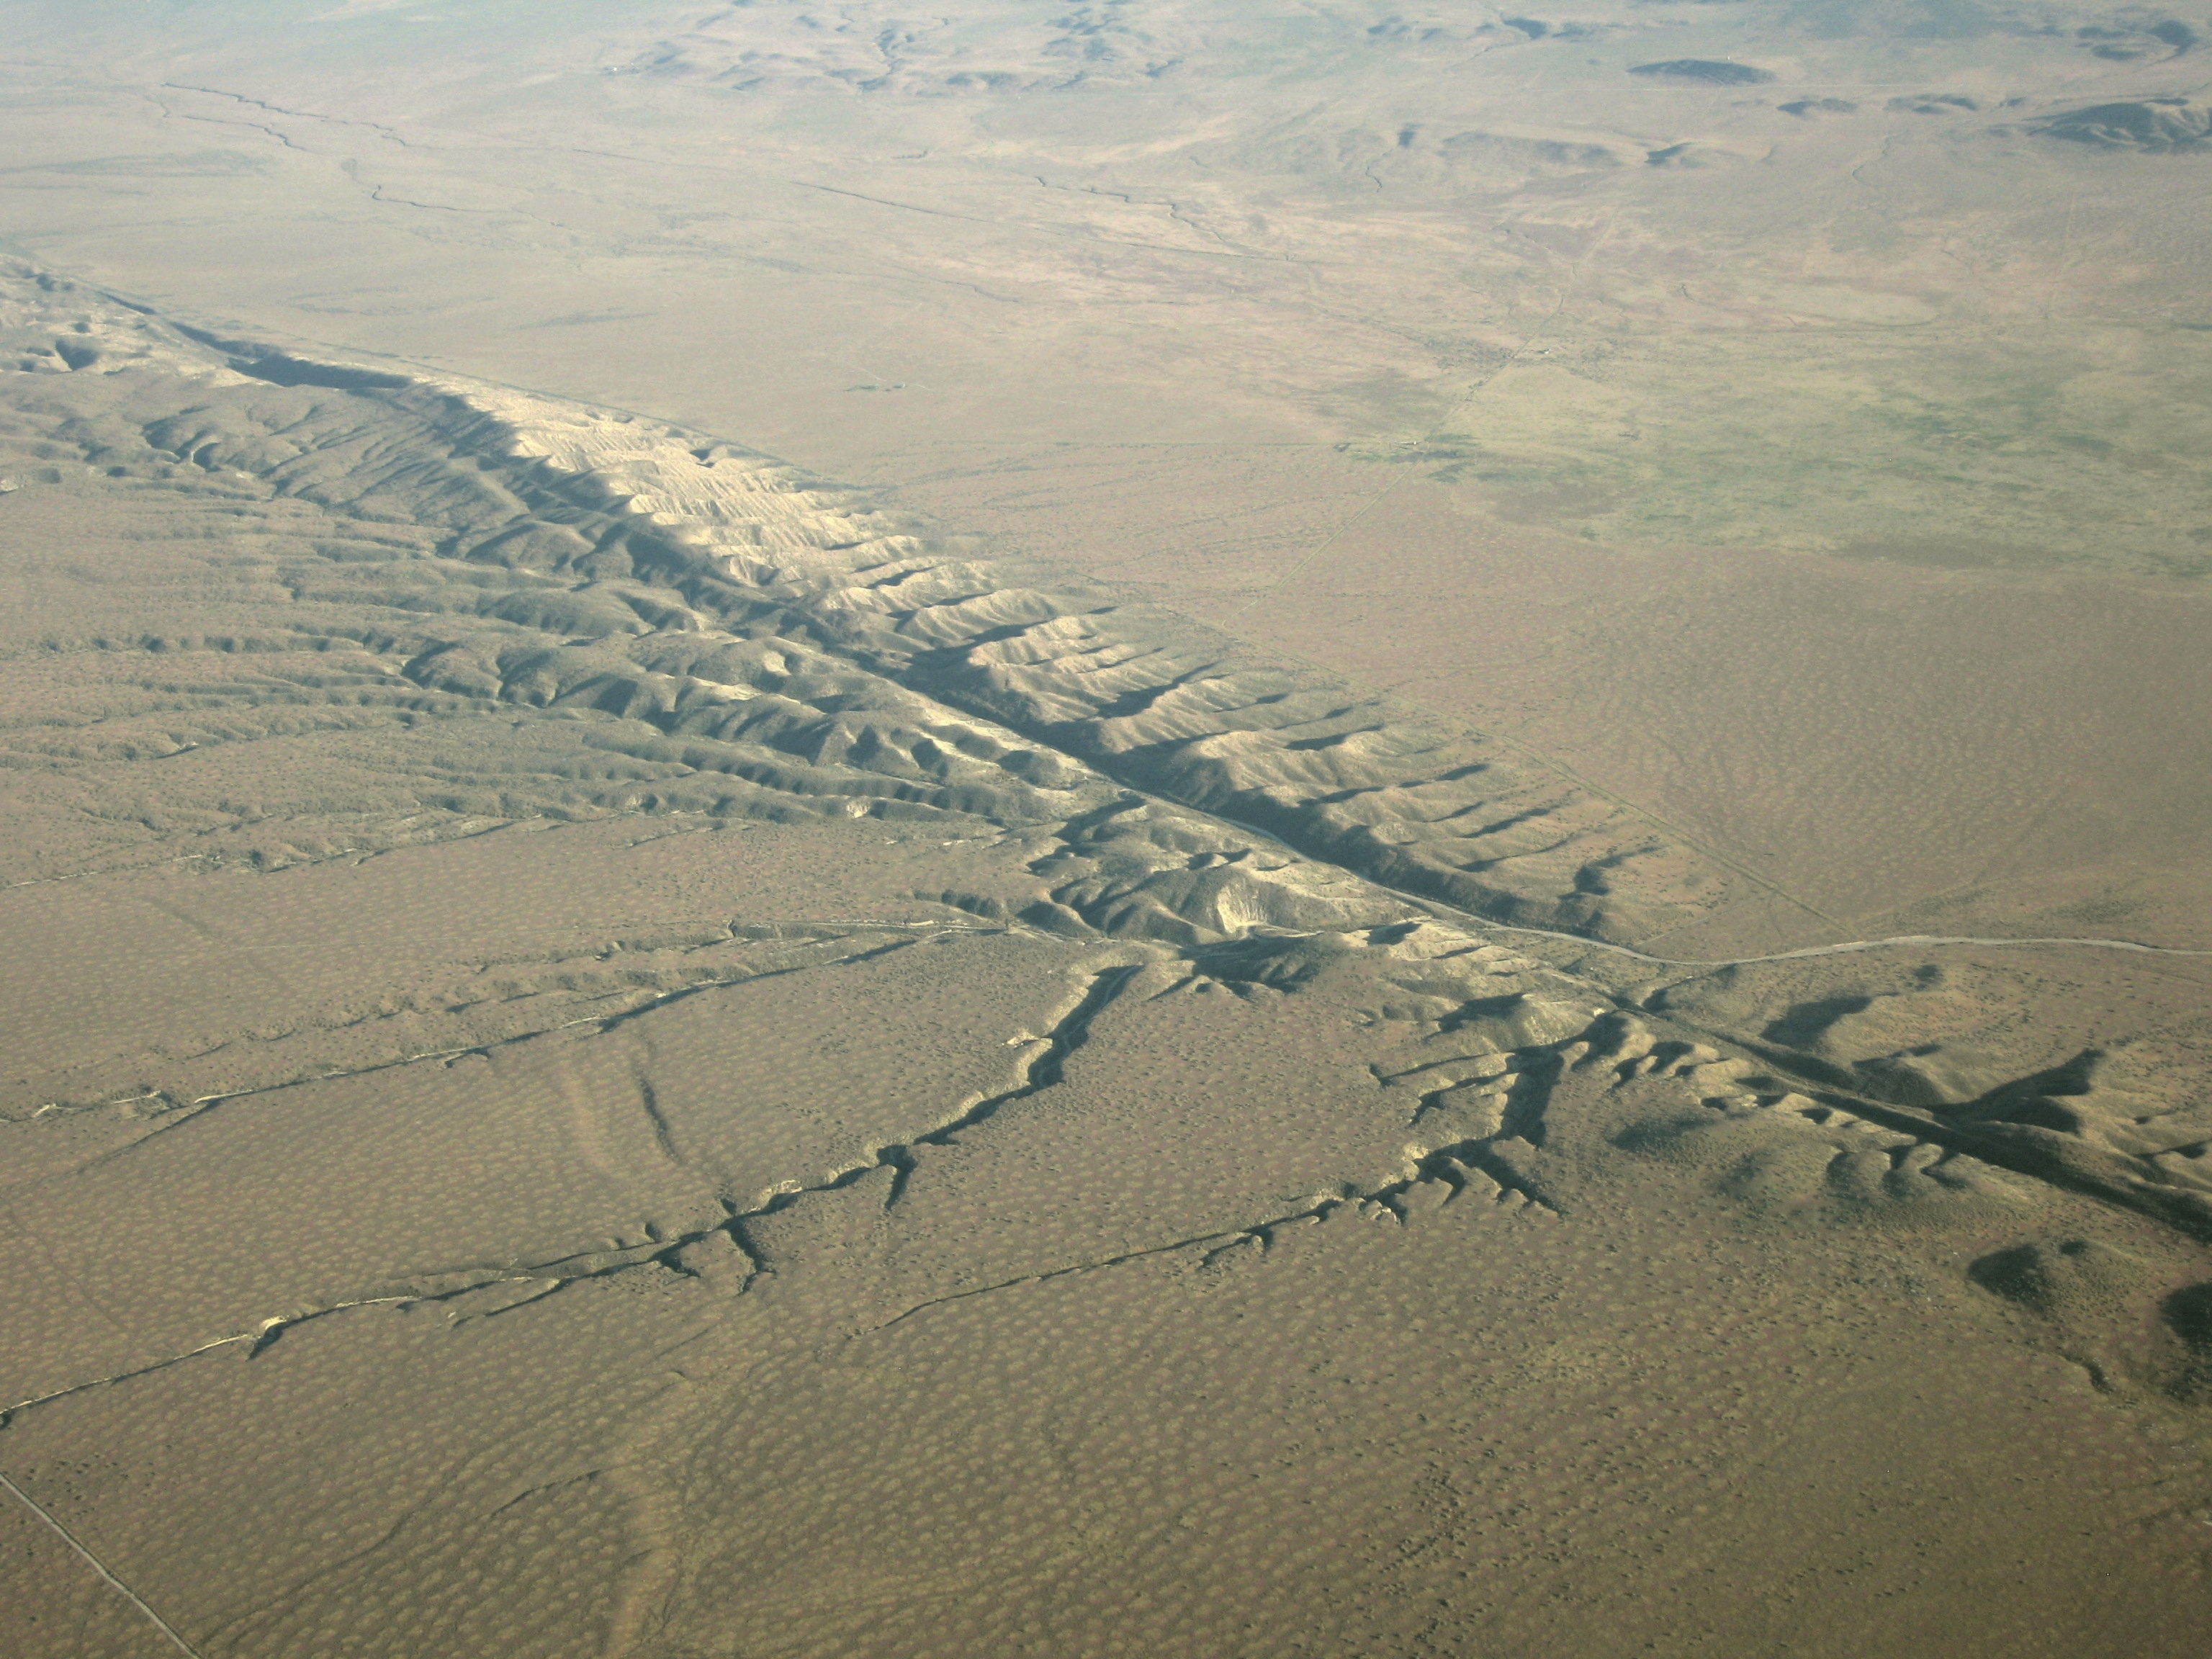 Pictures of the San Andreas Fault and its land forms